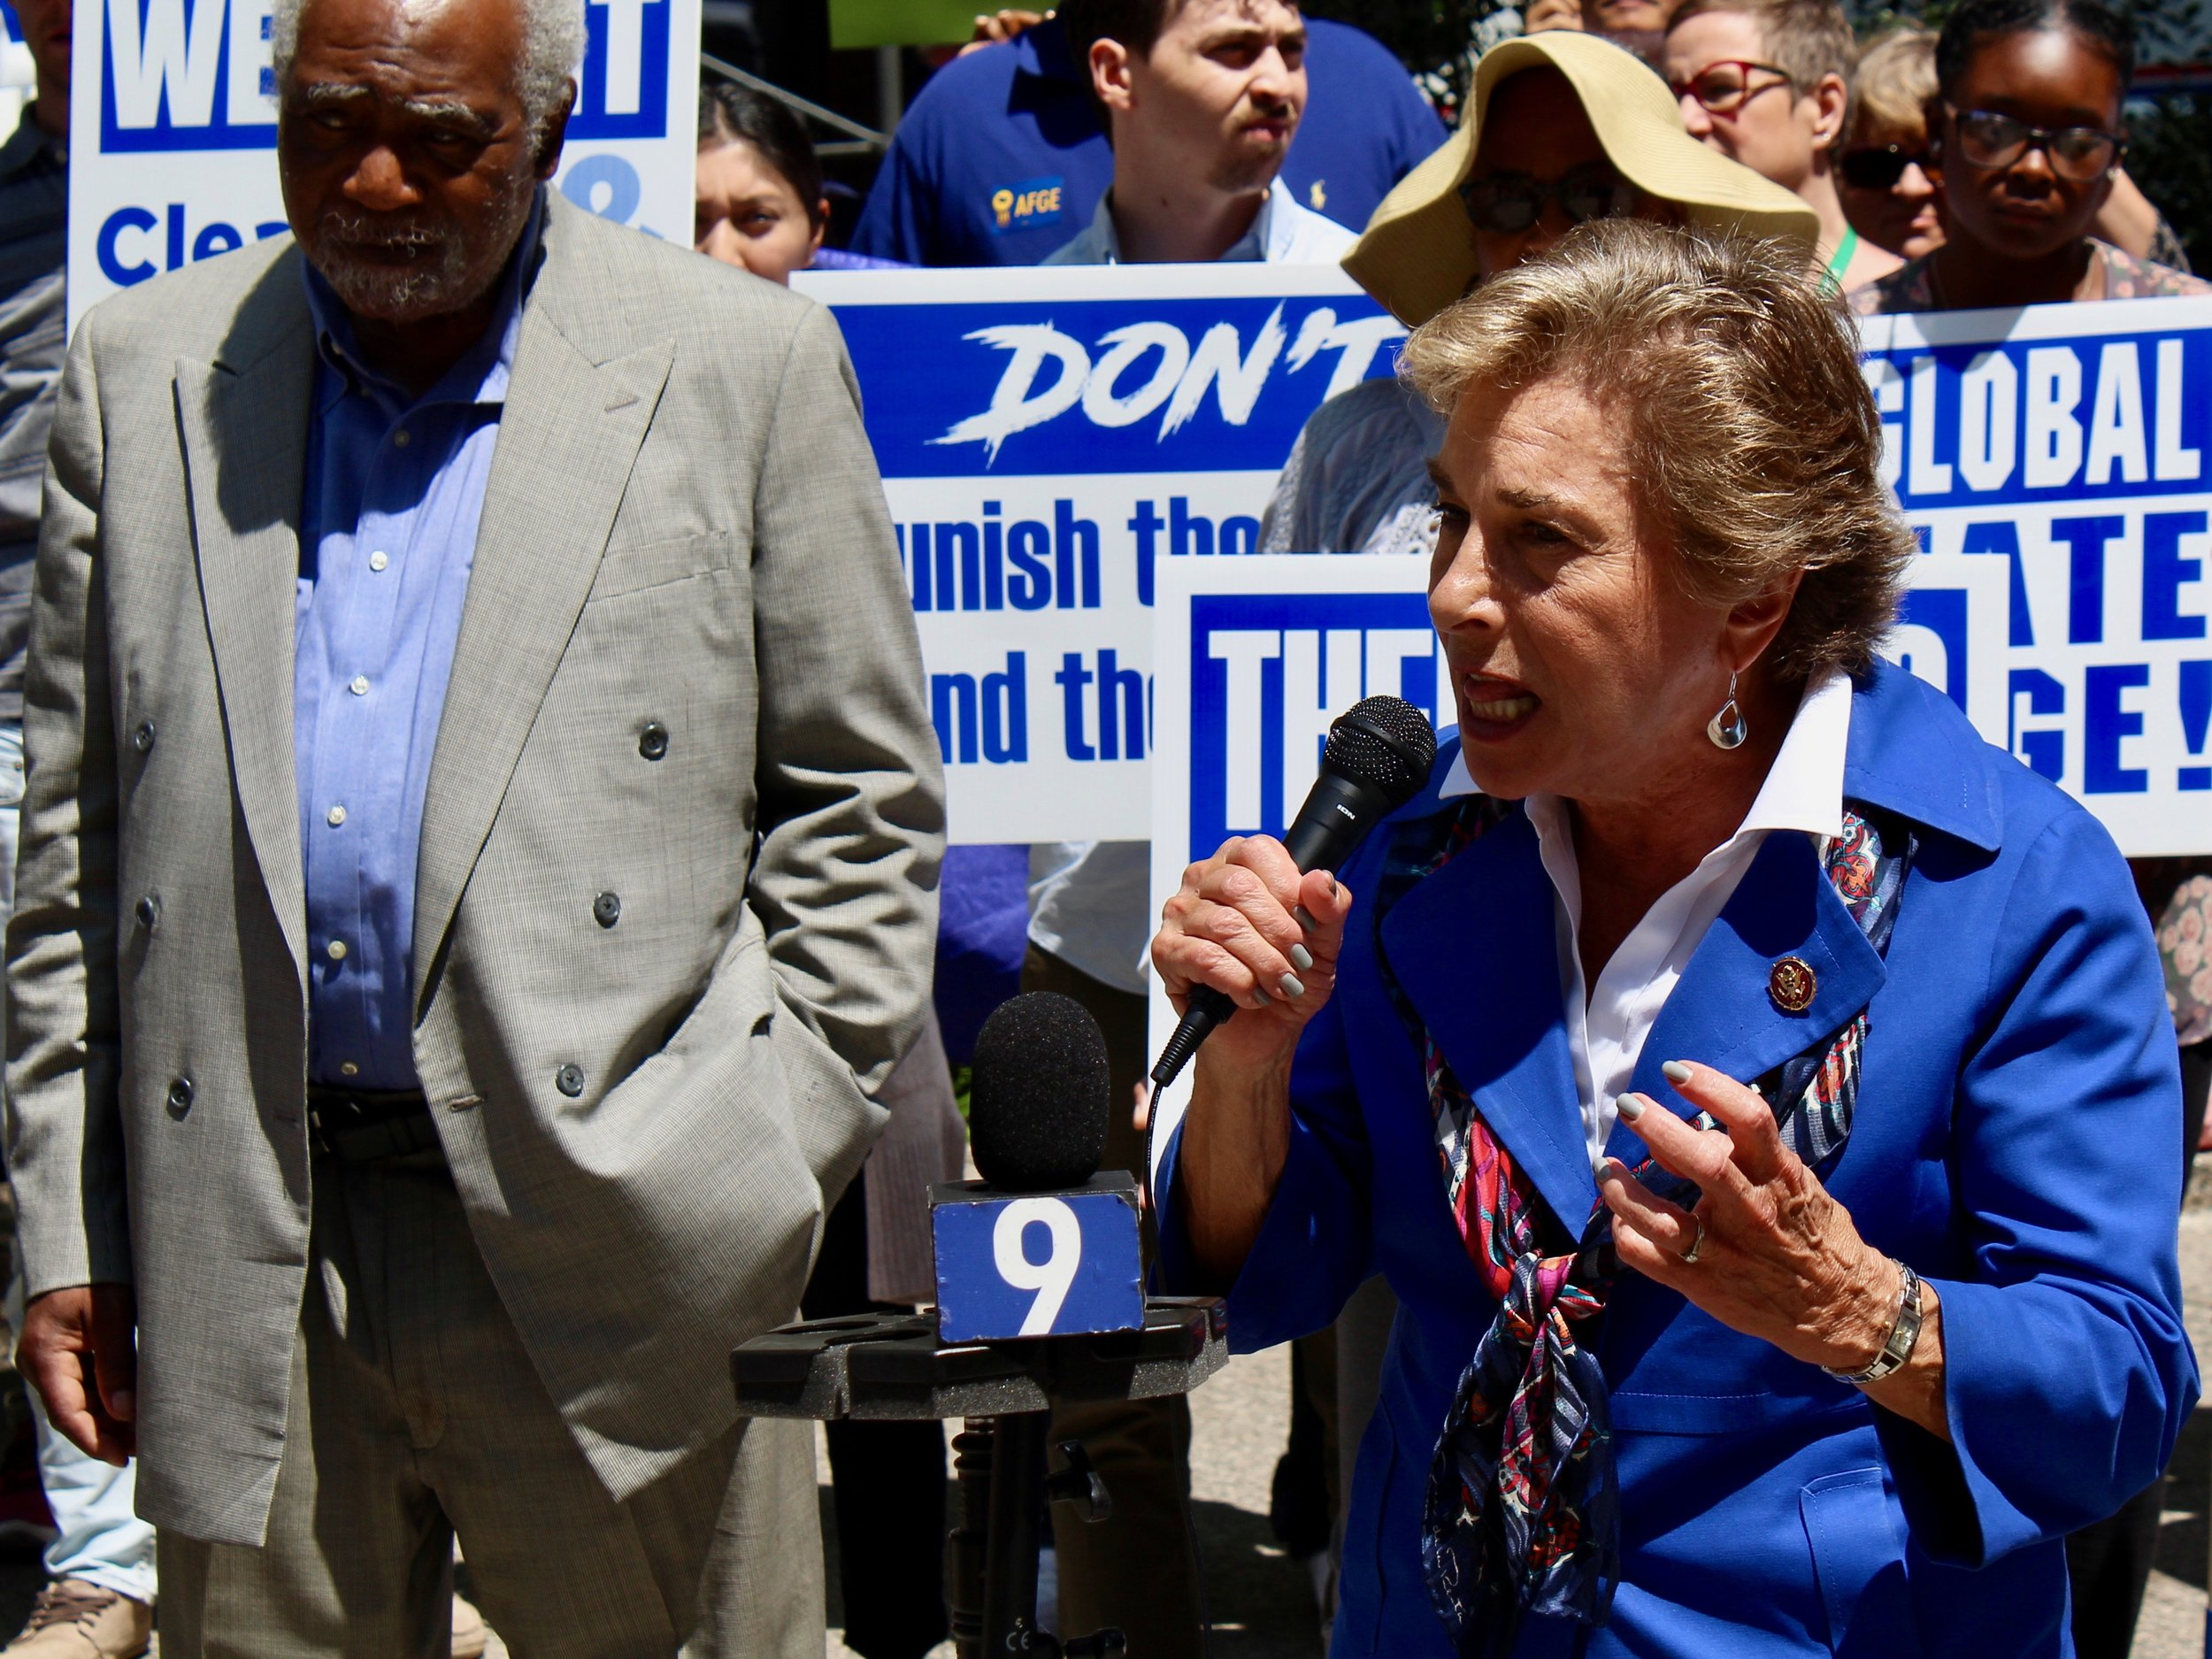 """What the president has done is illegal. The environment needs to be protected by these workers."" - U.S. Rep. Jan Schakowsky (One Illinois/Ted Cox)"